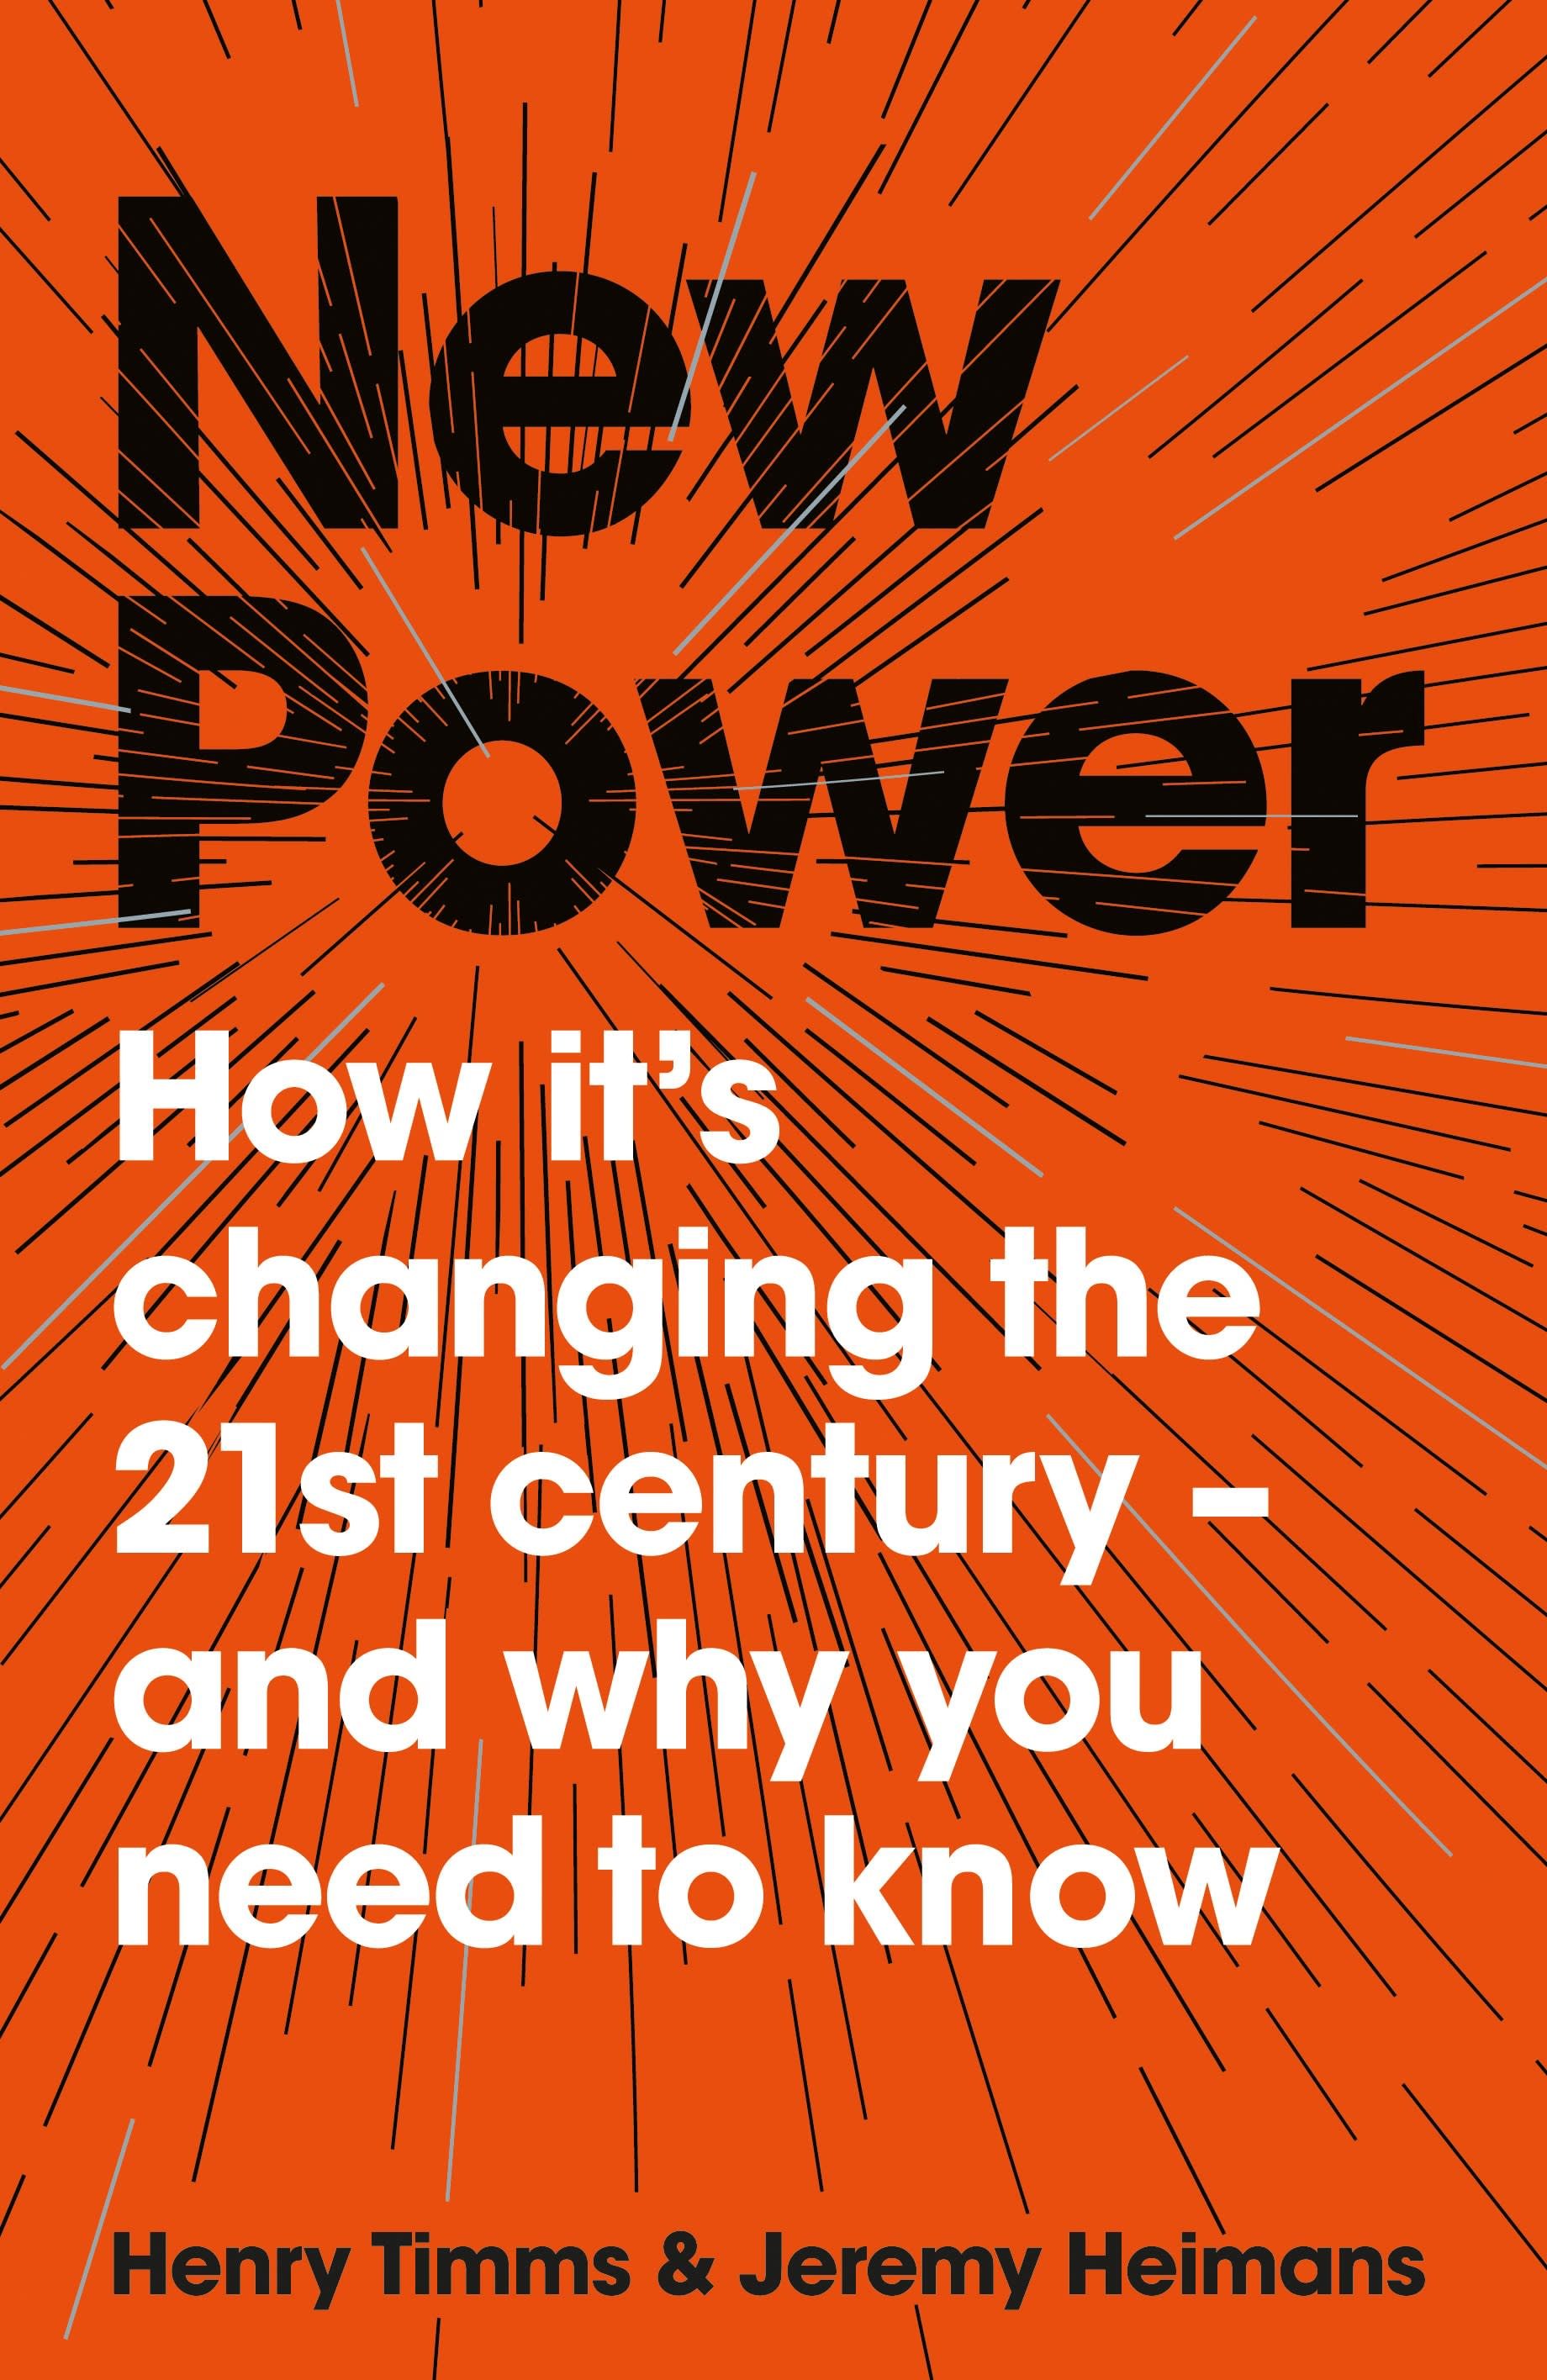 New Power by Jeremy Heimans, Henry Timms